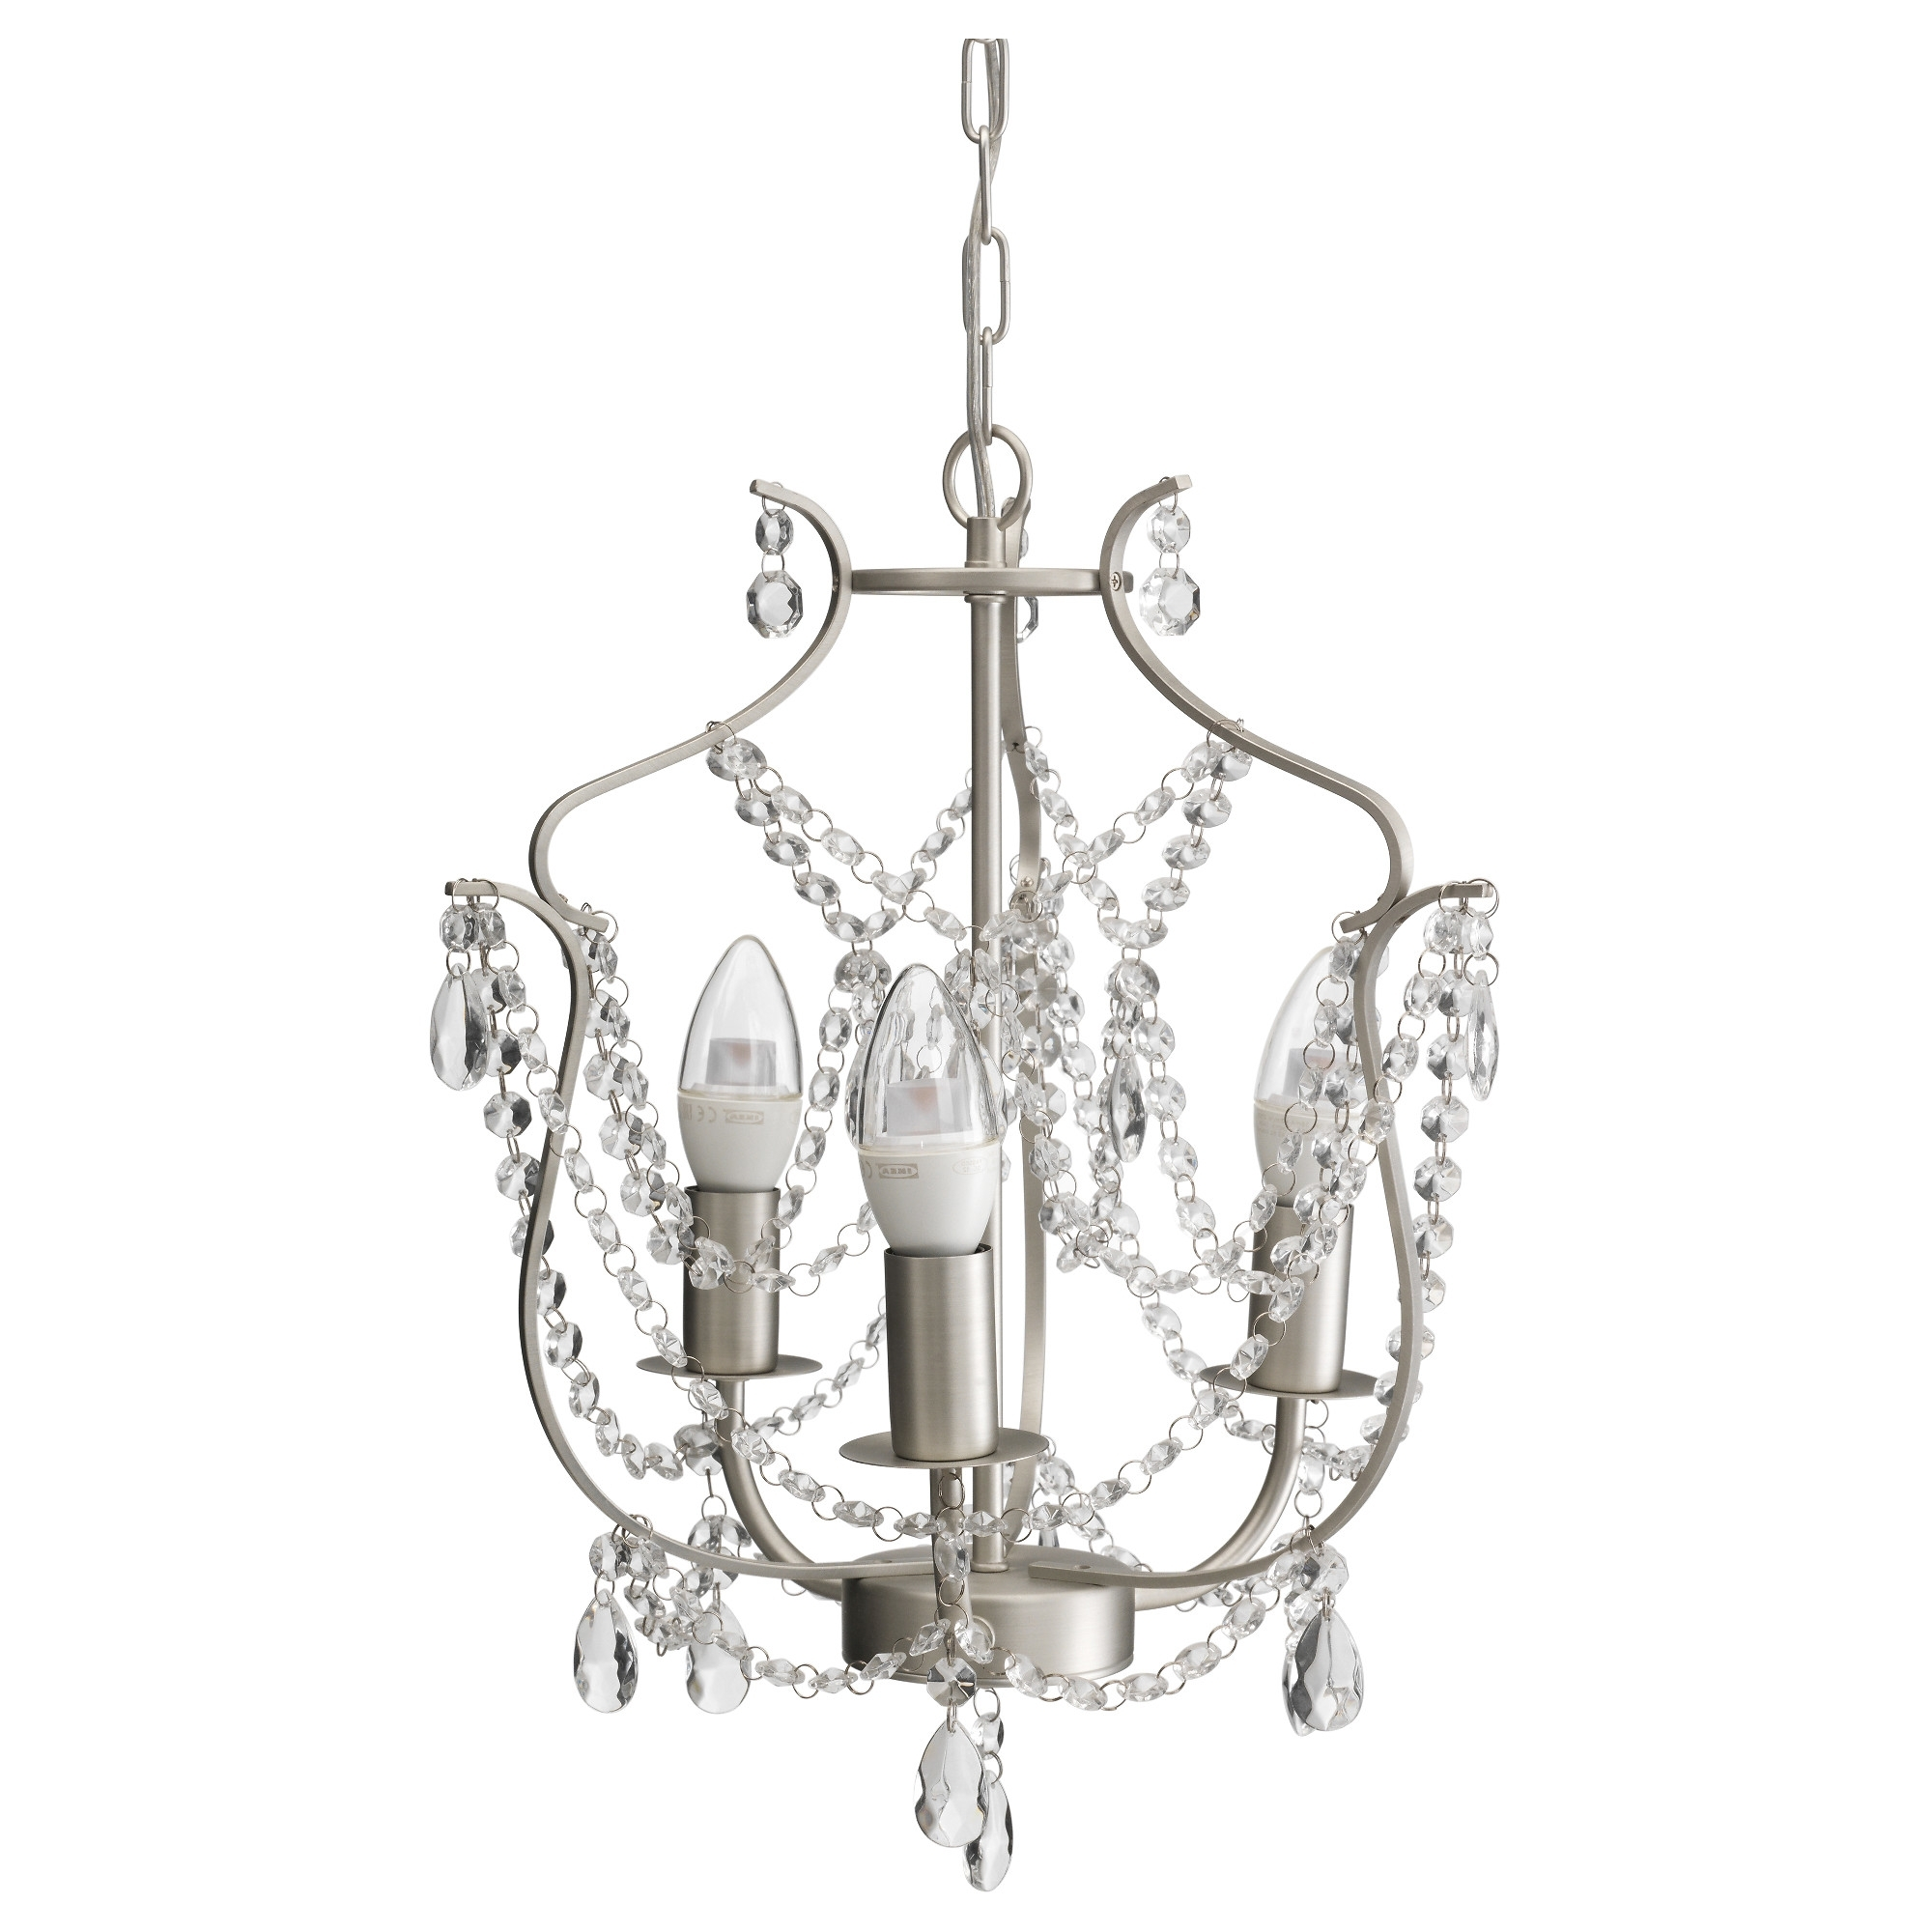 2019 Kristaller Chandelier, 3 Armed – Ikea Regarding Small White Chandeliers (View 2 of 20)